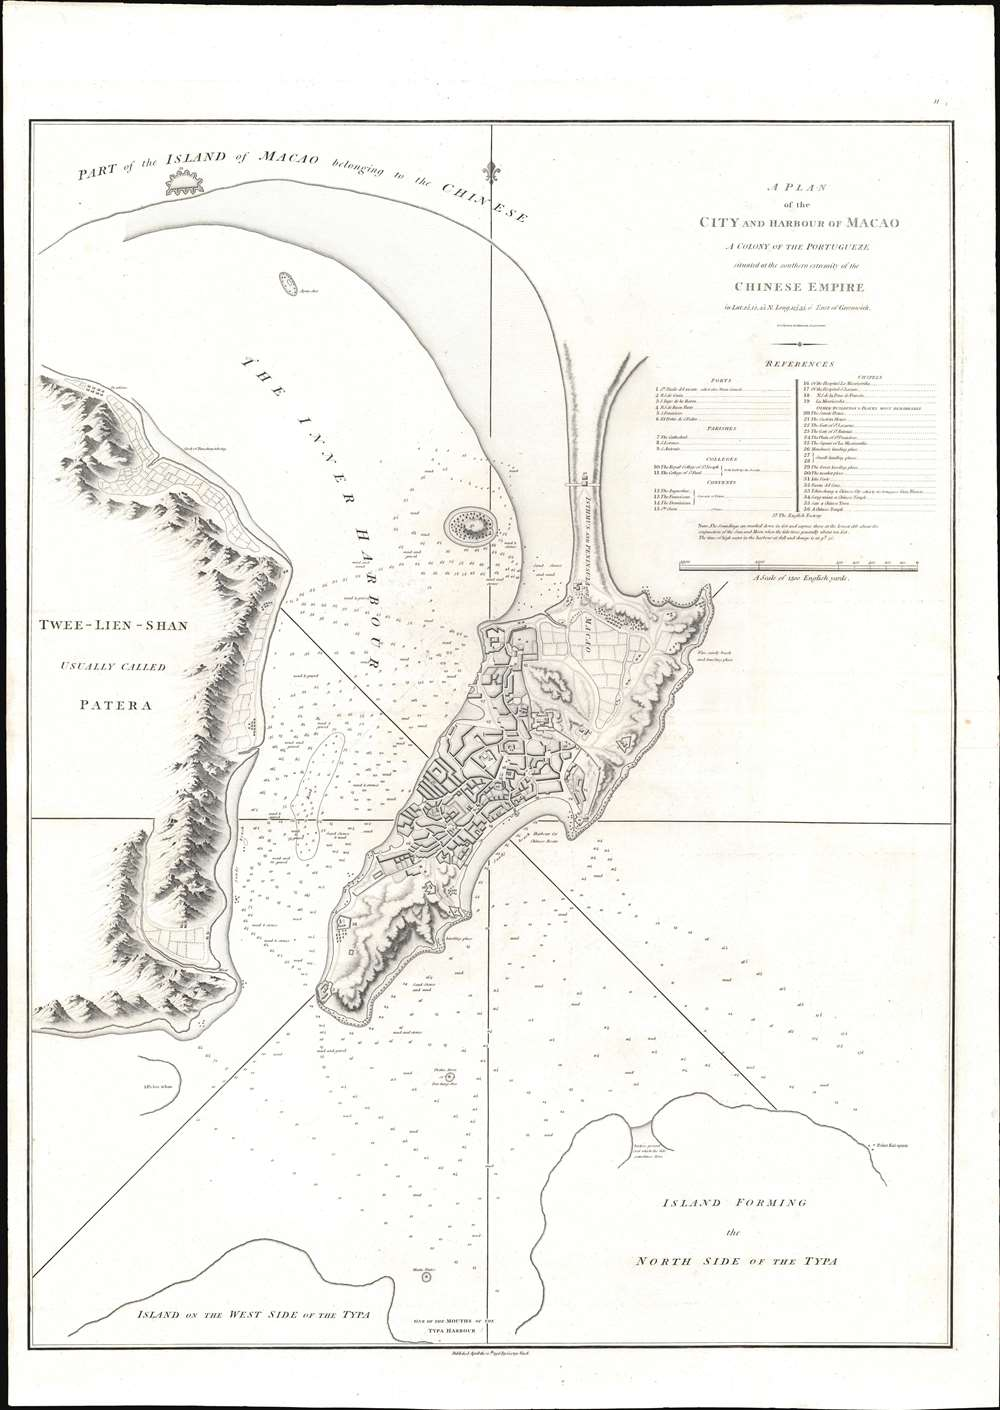 A Plan of the City and Harbour of Macao A Colony of the Portugueze situated at the southern extremity of the Chinese Empire in Lat. 22 ⁰12ʹ44'' N., long. 113⁰35ʹ0'' east of Greenwich. - Main View